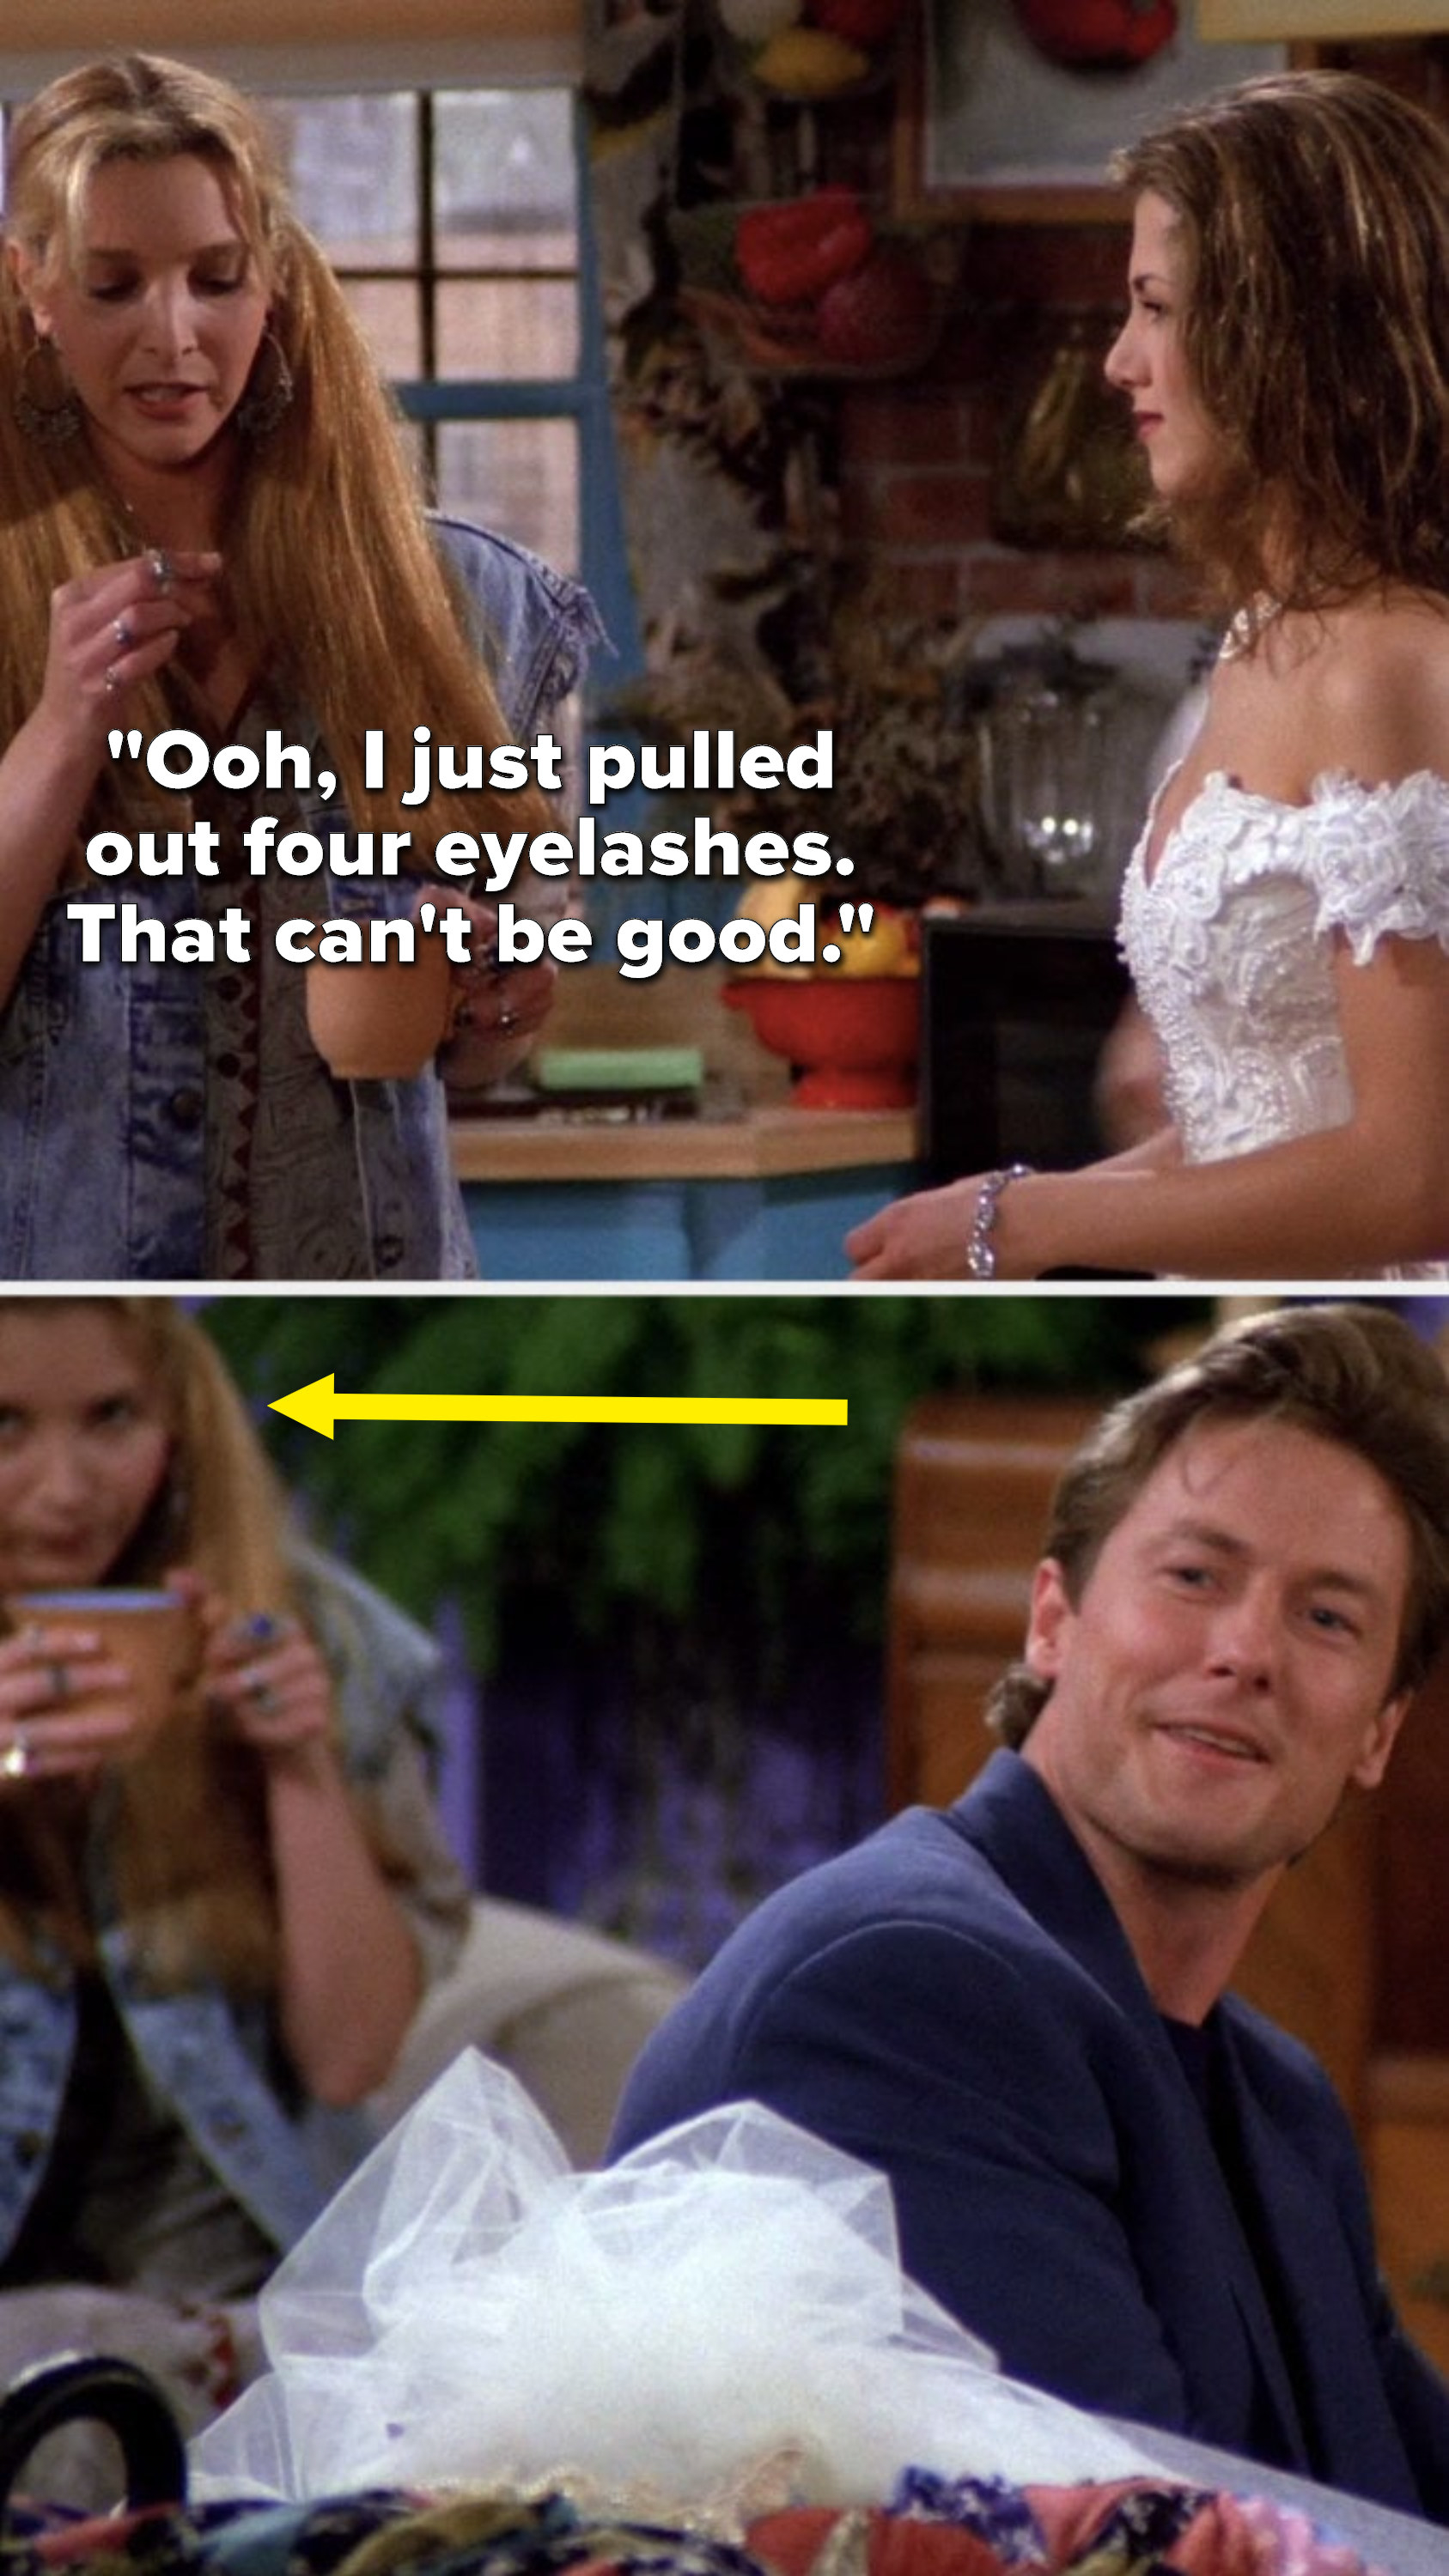 """Phoebe is standing and says to Rachel, """"Ooh, I just pulled out four eyelashes, that can't be good,"""" then when Paul reacts, Phoebe is sitting behind him"""